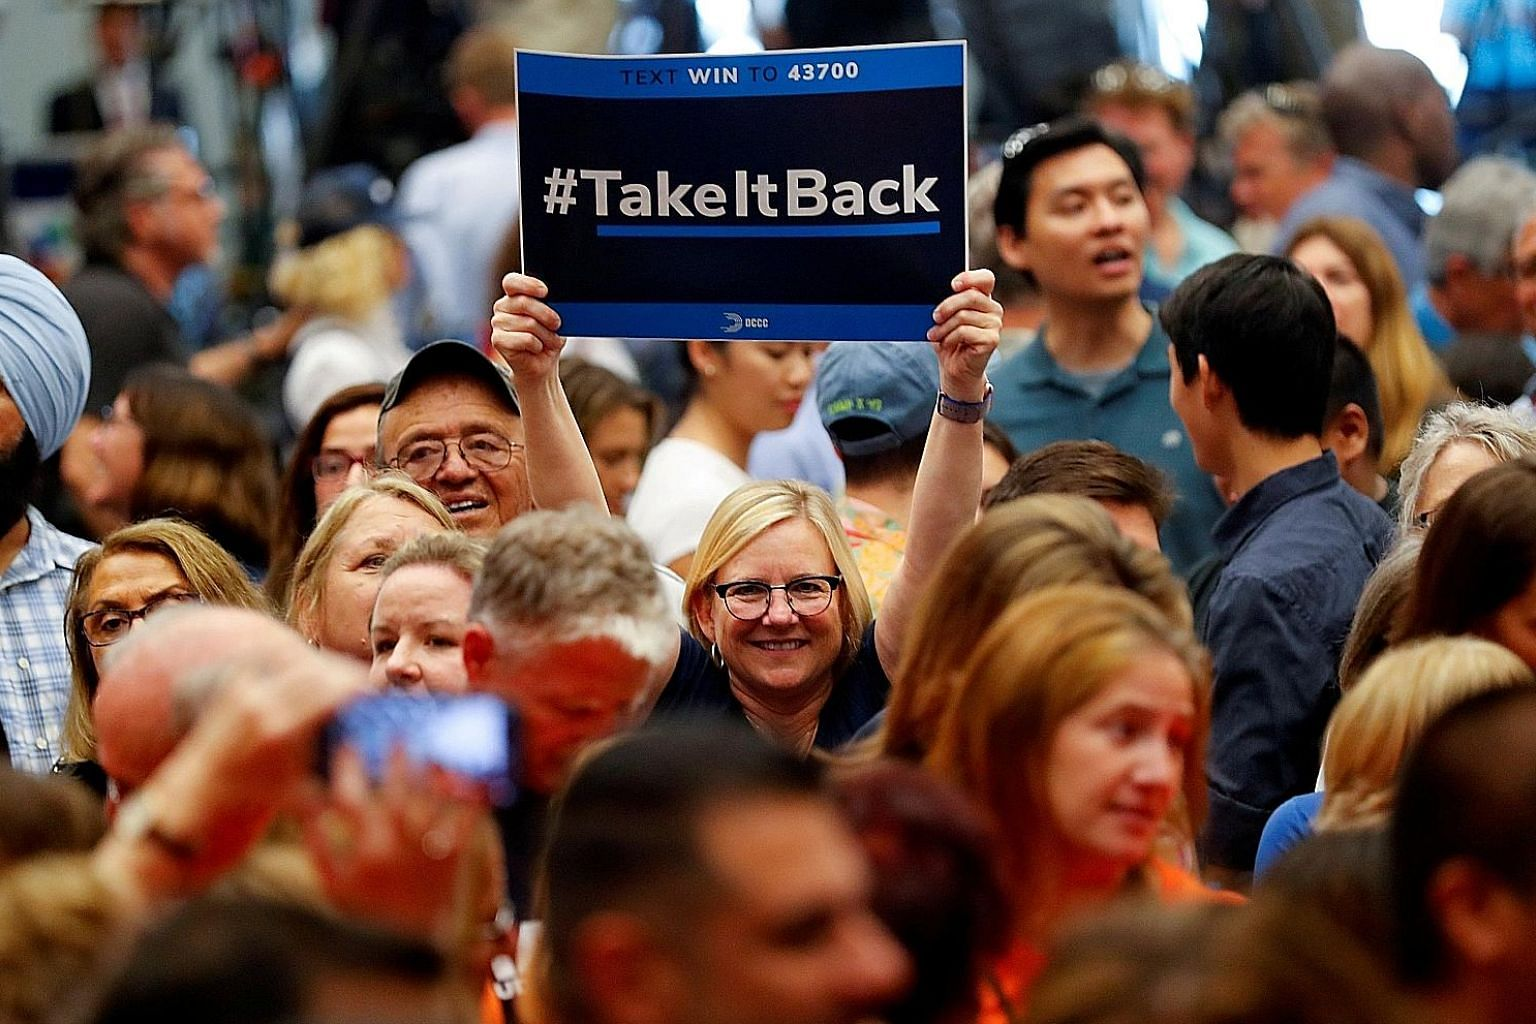 Supporters at a political rally with former president Barack Obama for Democratic California candidates in Anaheim, California, on Sept 8. Democrats are expected to take back the House of Representatives in the mid-terms.